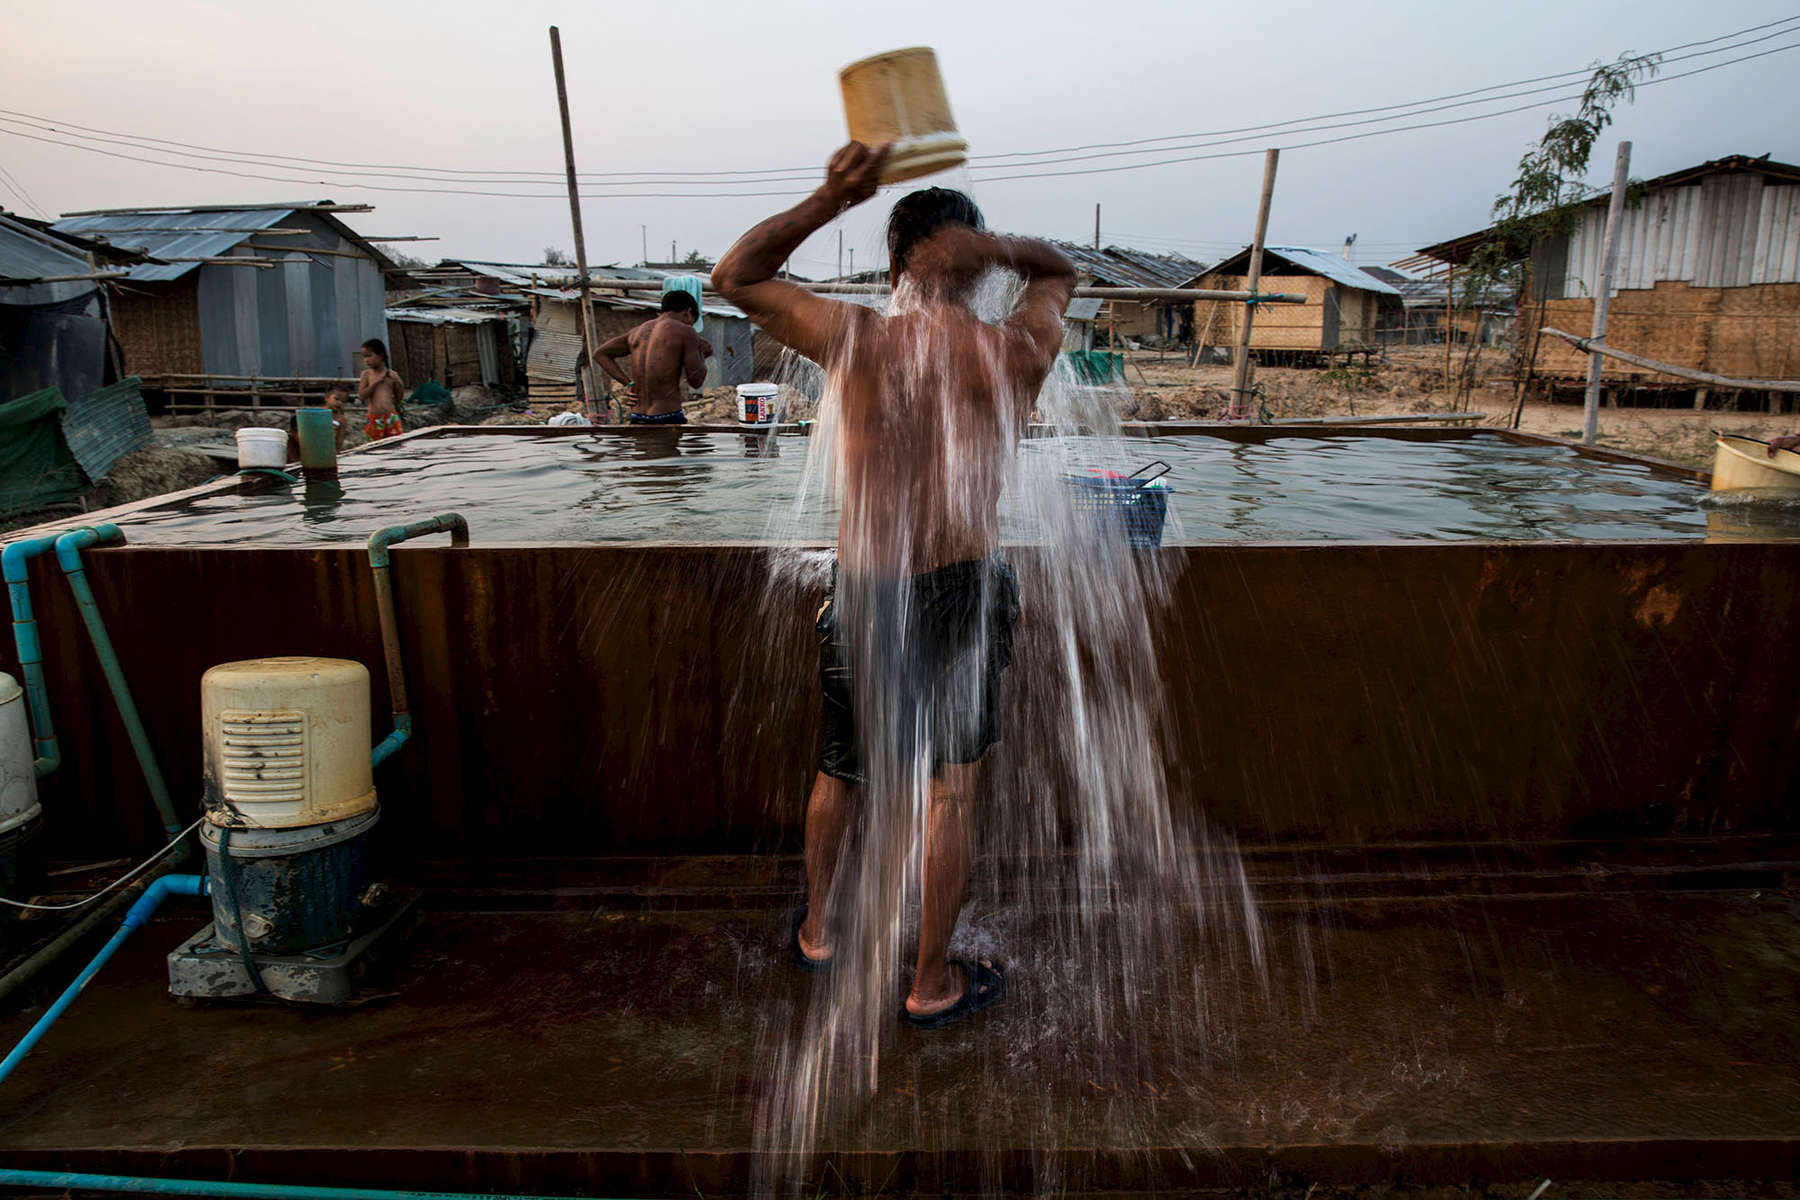 Migrants wash from a communal water basin shared by the entire camp of  approximately 200 people.